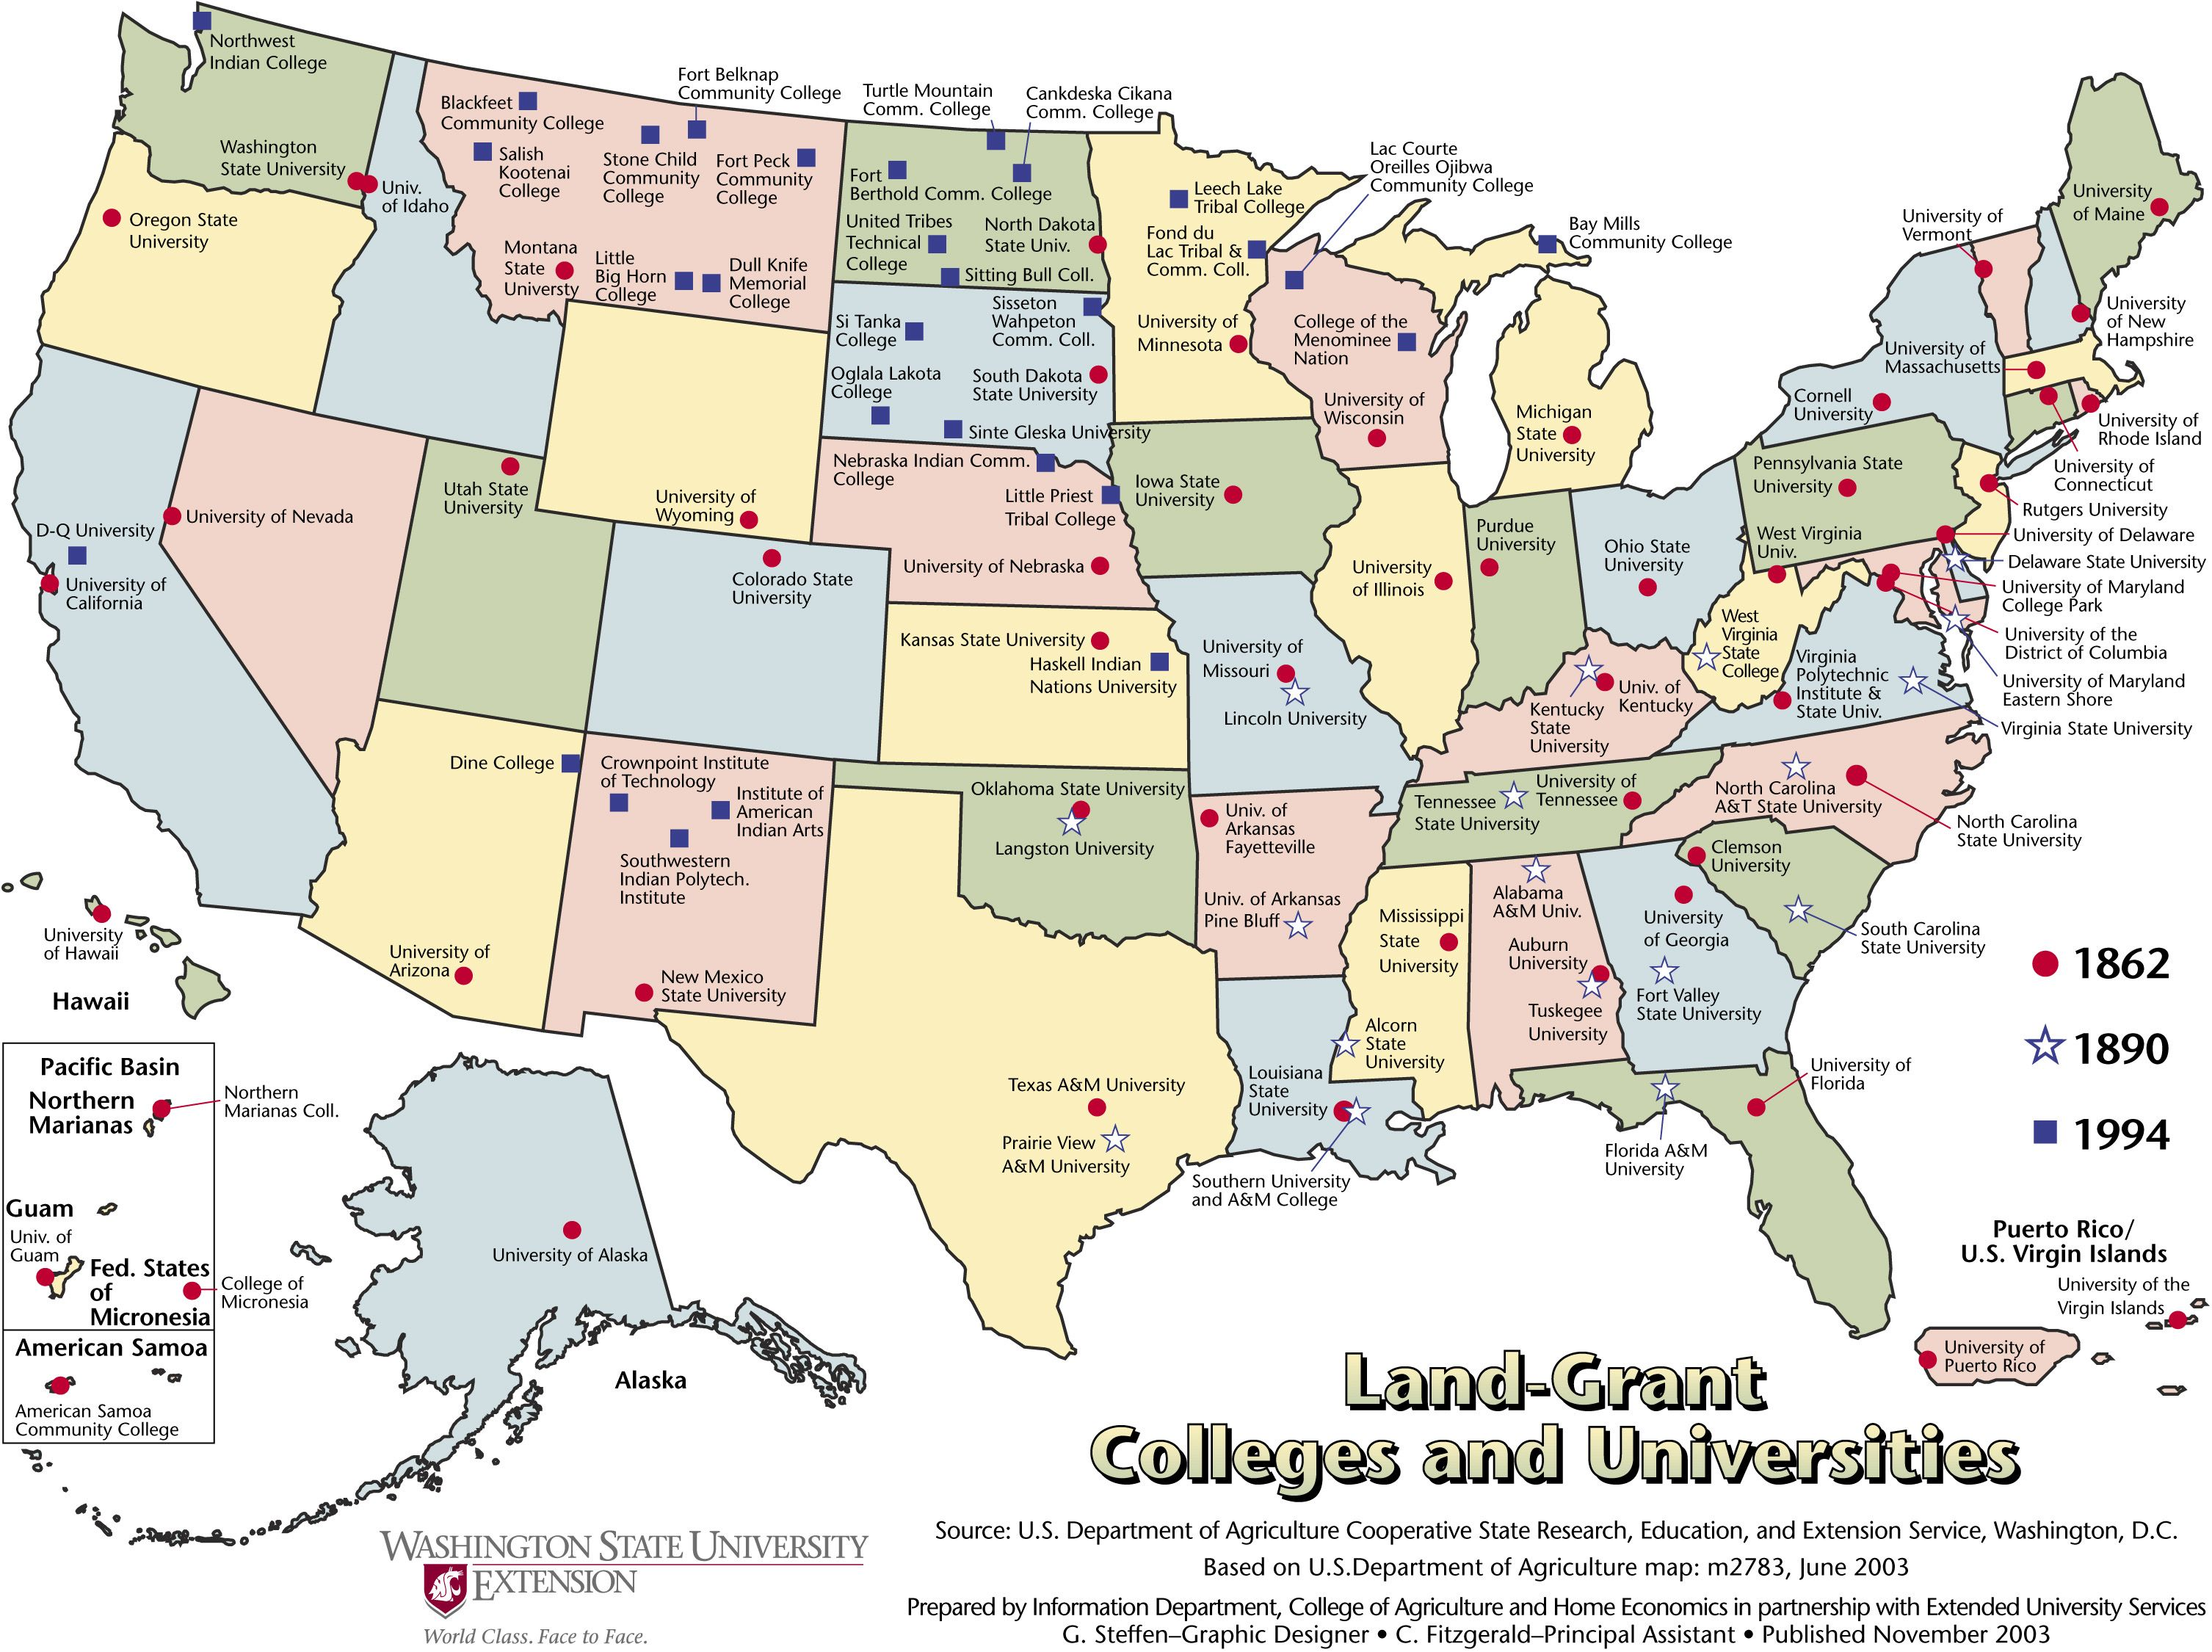 Land Grant Colleges And Universities In The United States Maps - Us map of universities